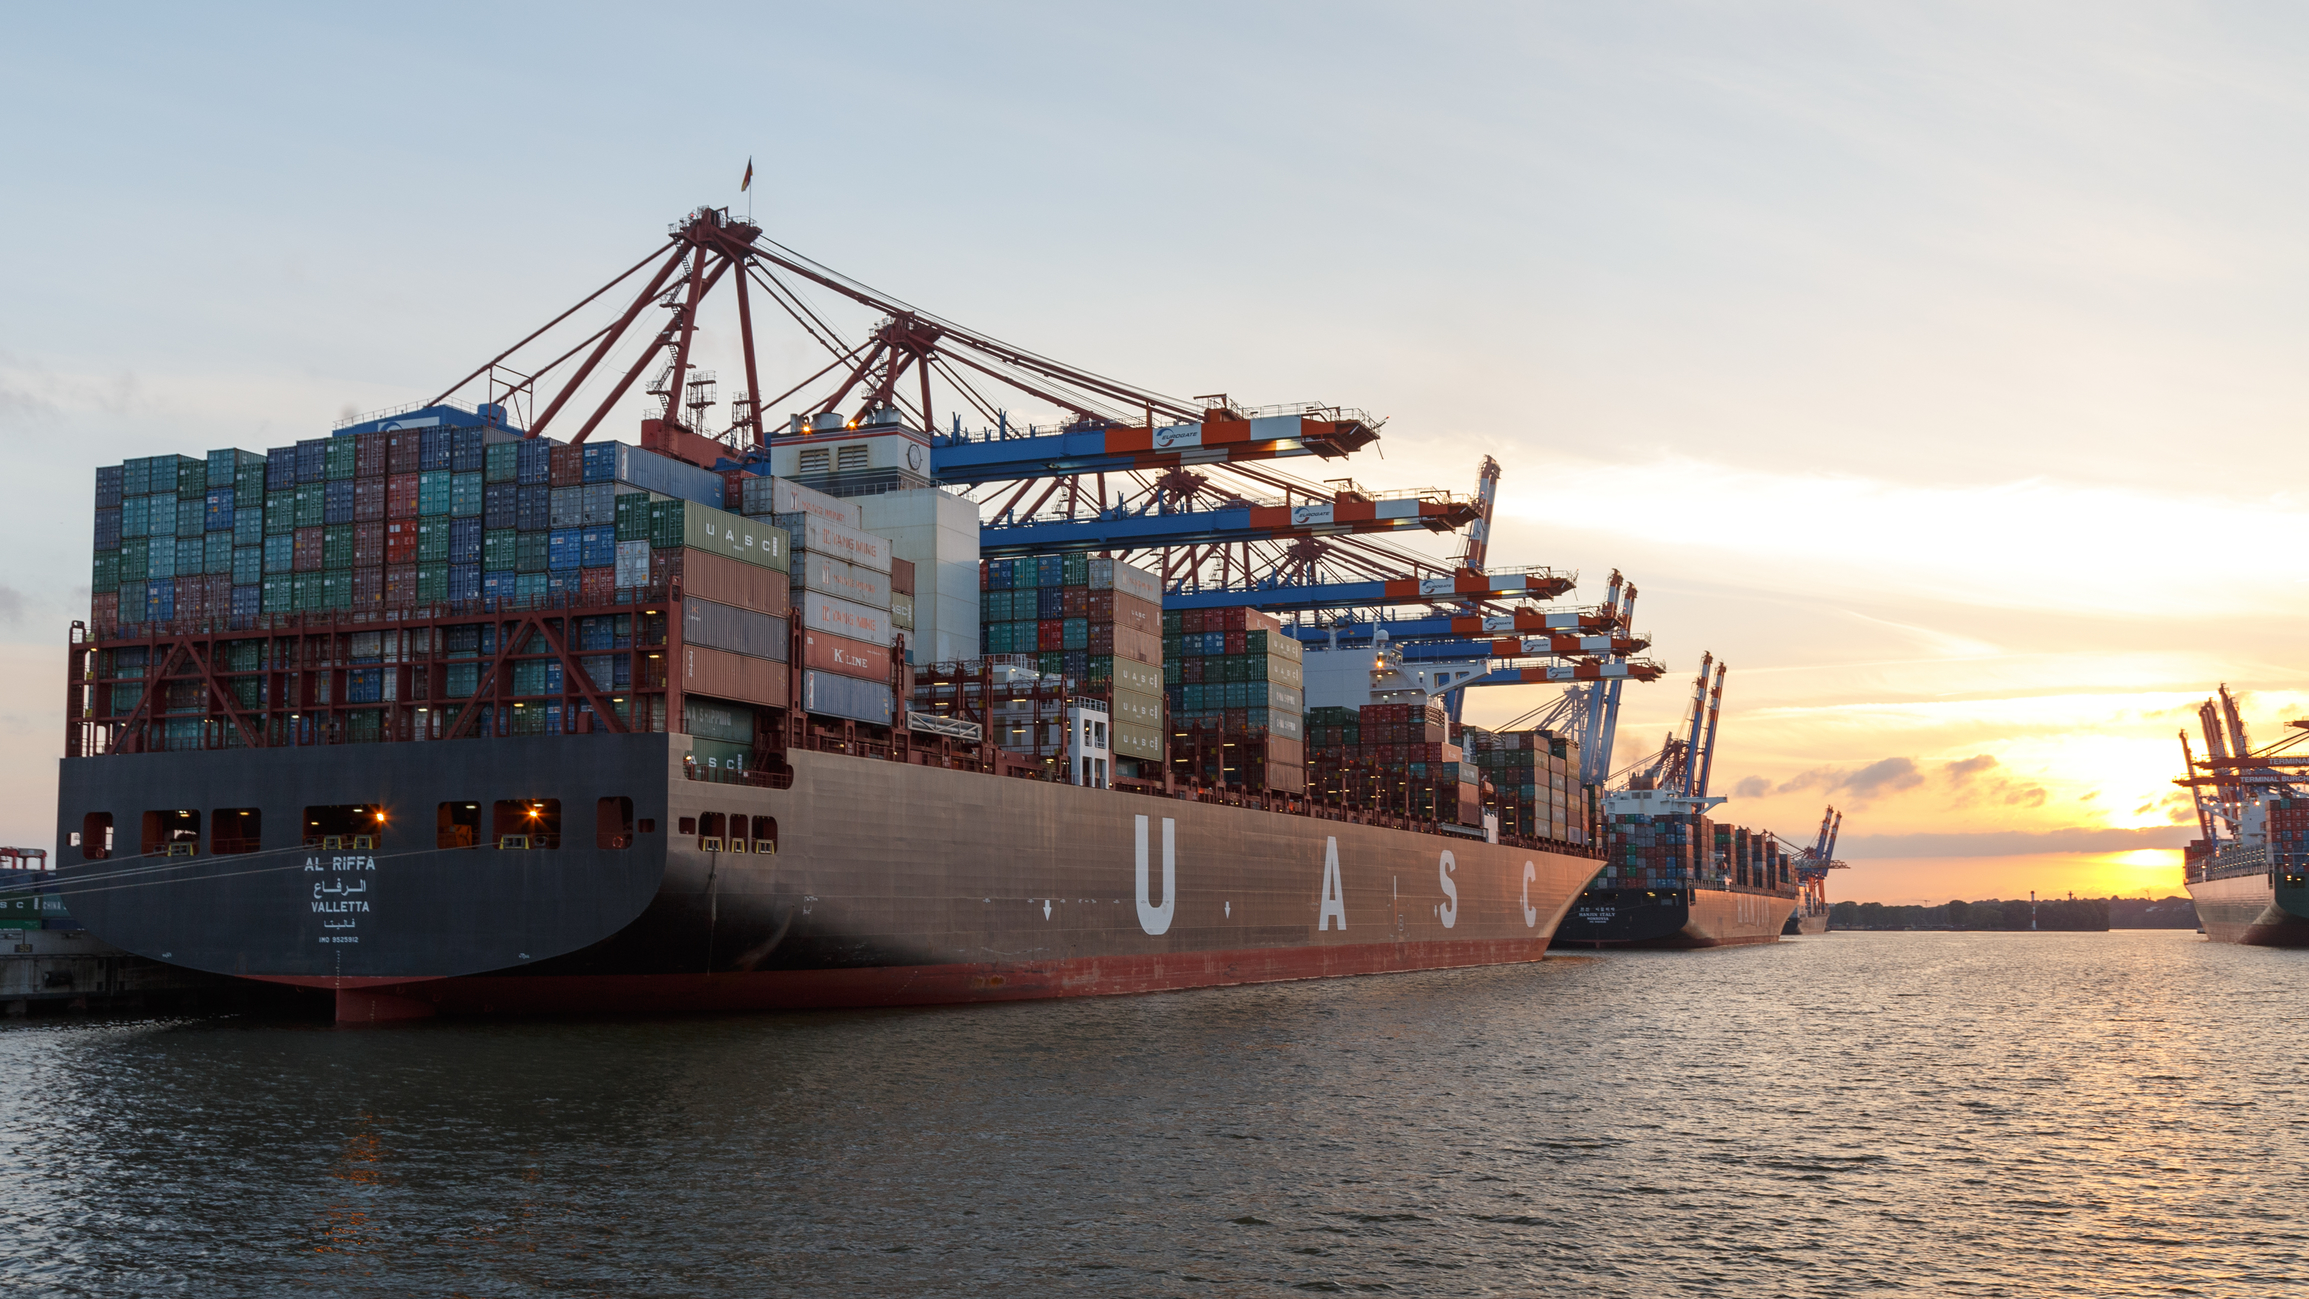 German shipping group Hapag Lloyd completes merger with Arab peer UASC